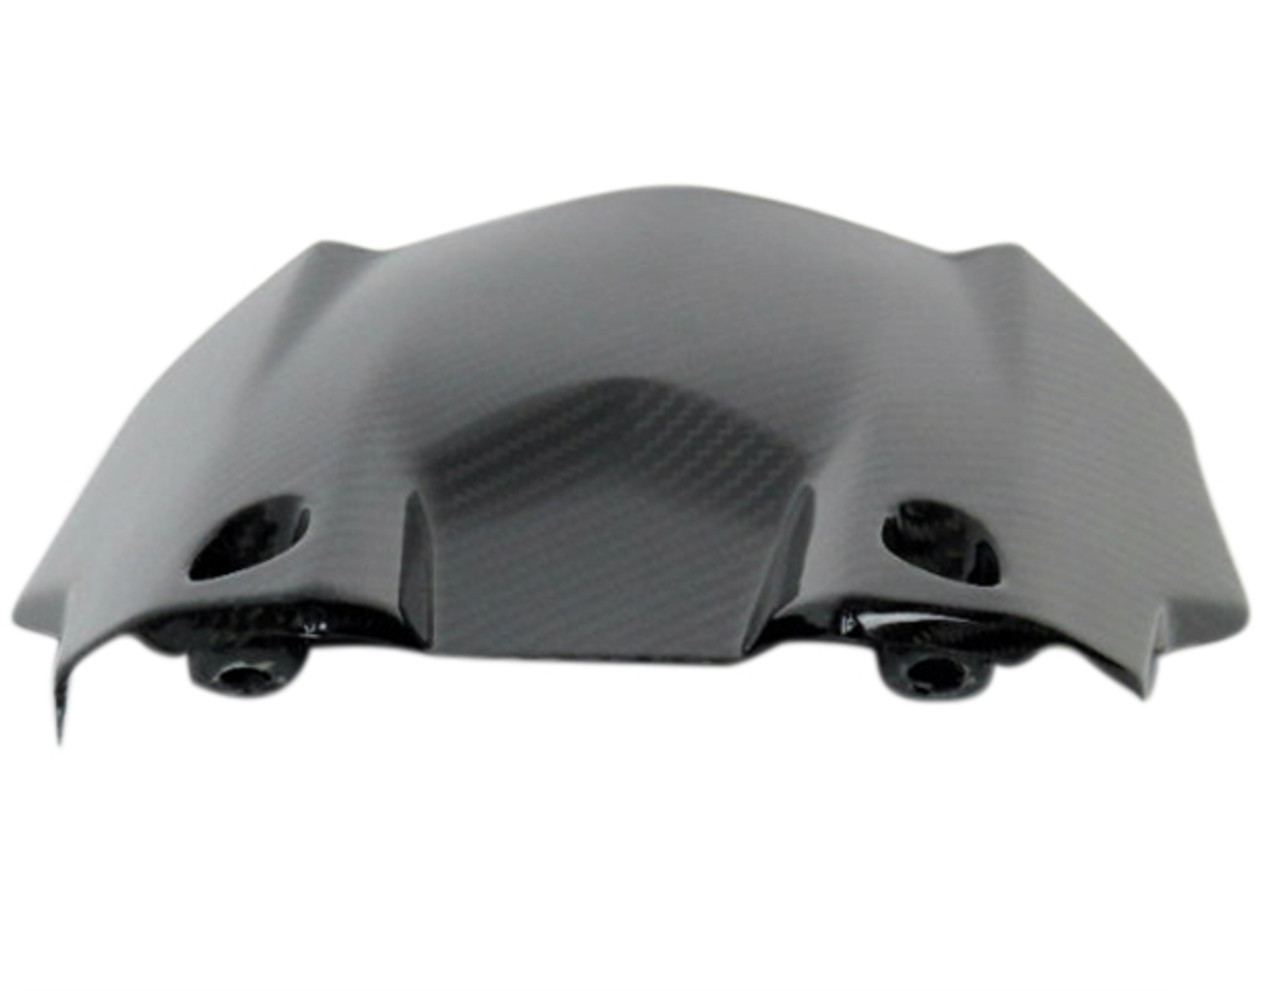 Rear Hugger in Glossy Twill Weave Carbon Fiber for Yamaha R1 2015+